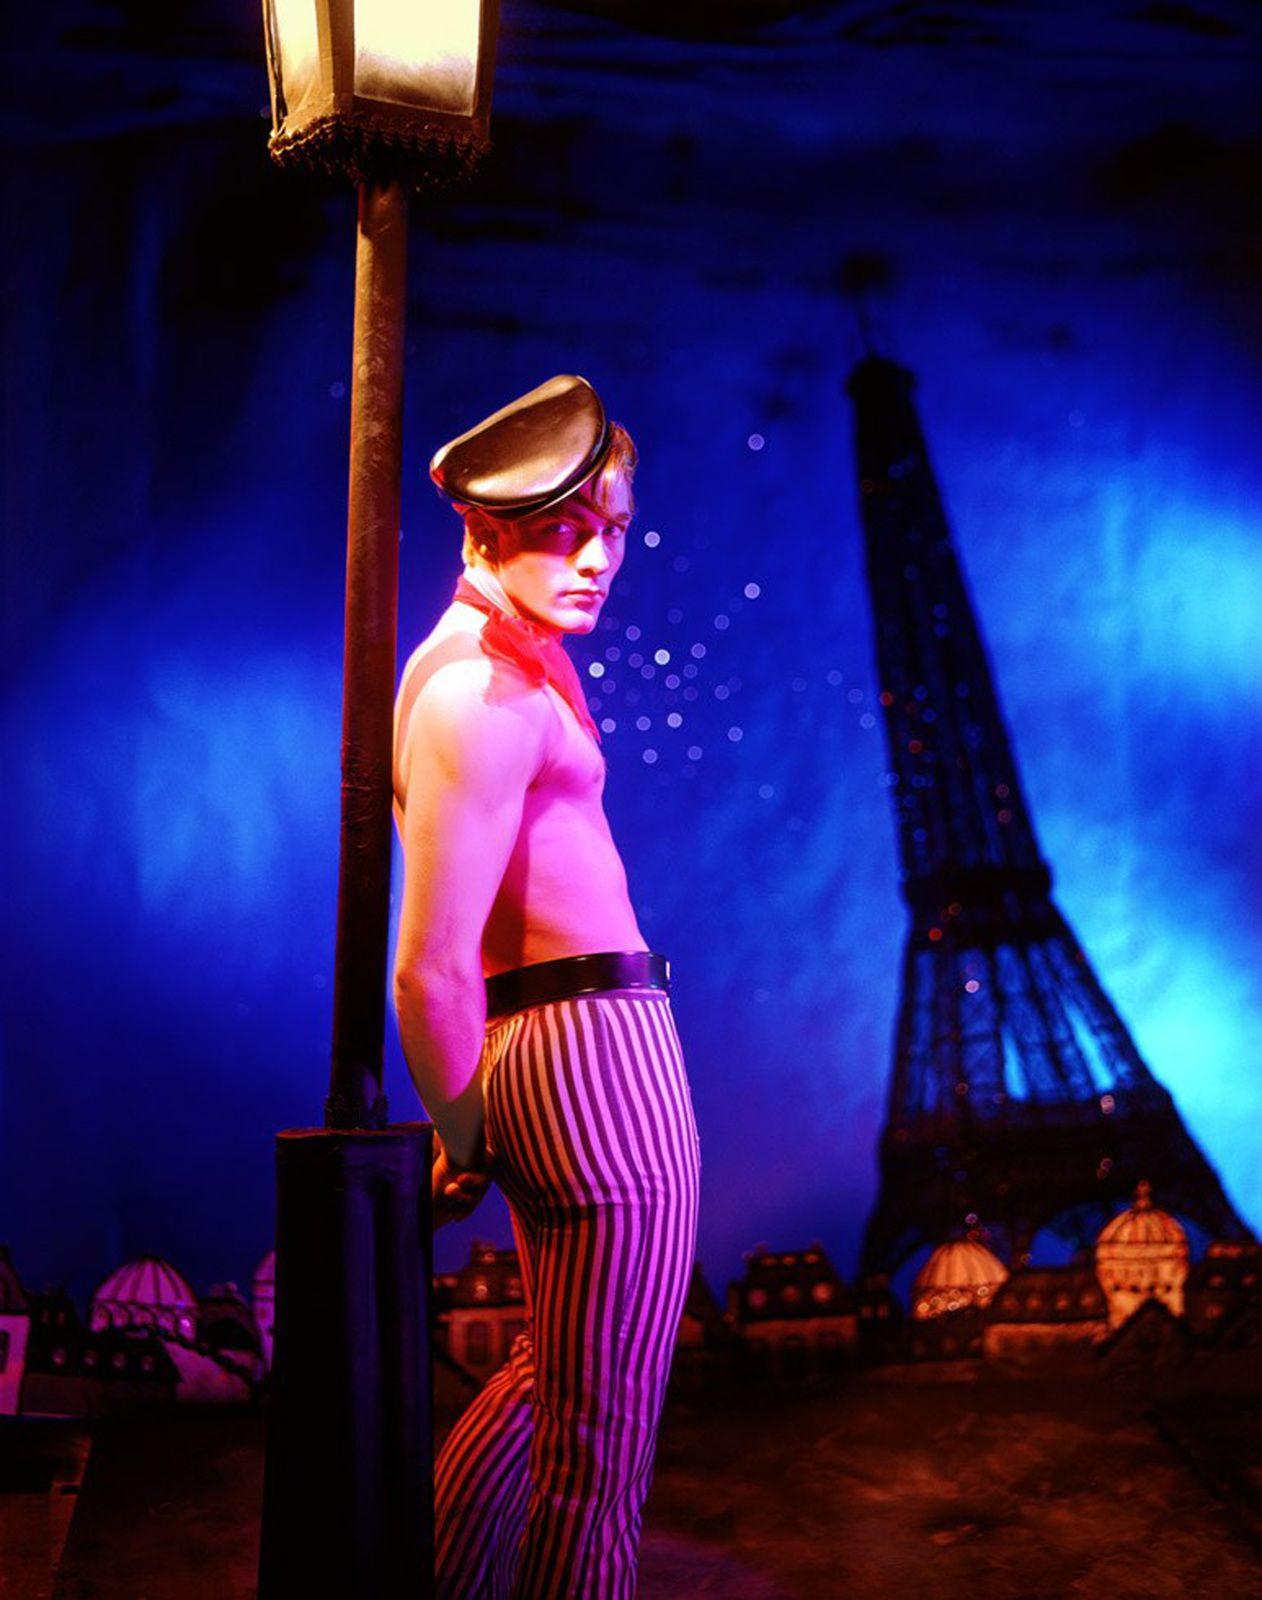 """Sans titled"", 1963 de James BIDGOOD - Courtesy Galerie Mathias Coullaud"